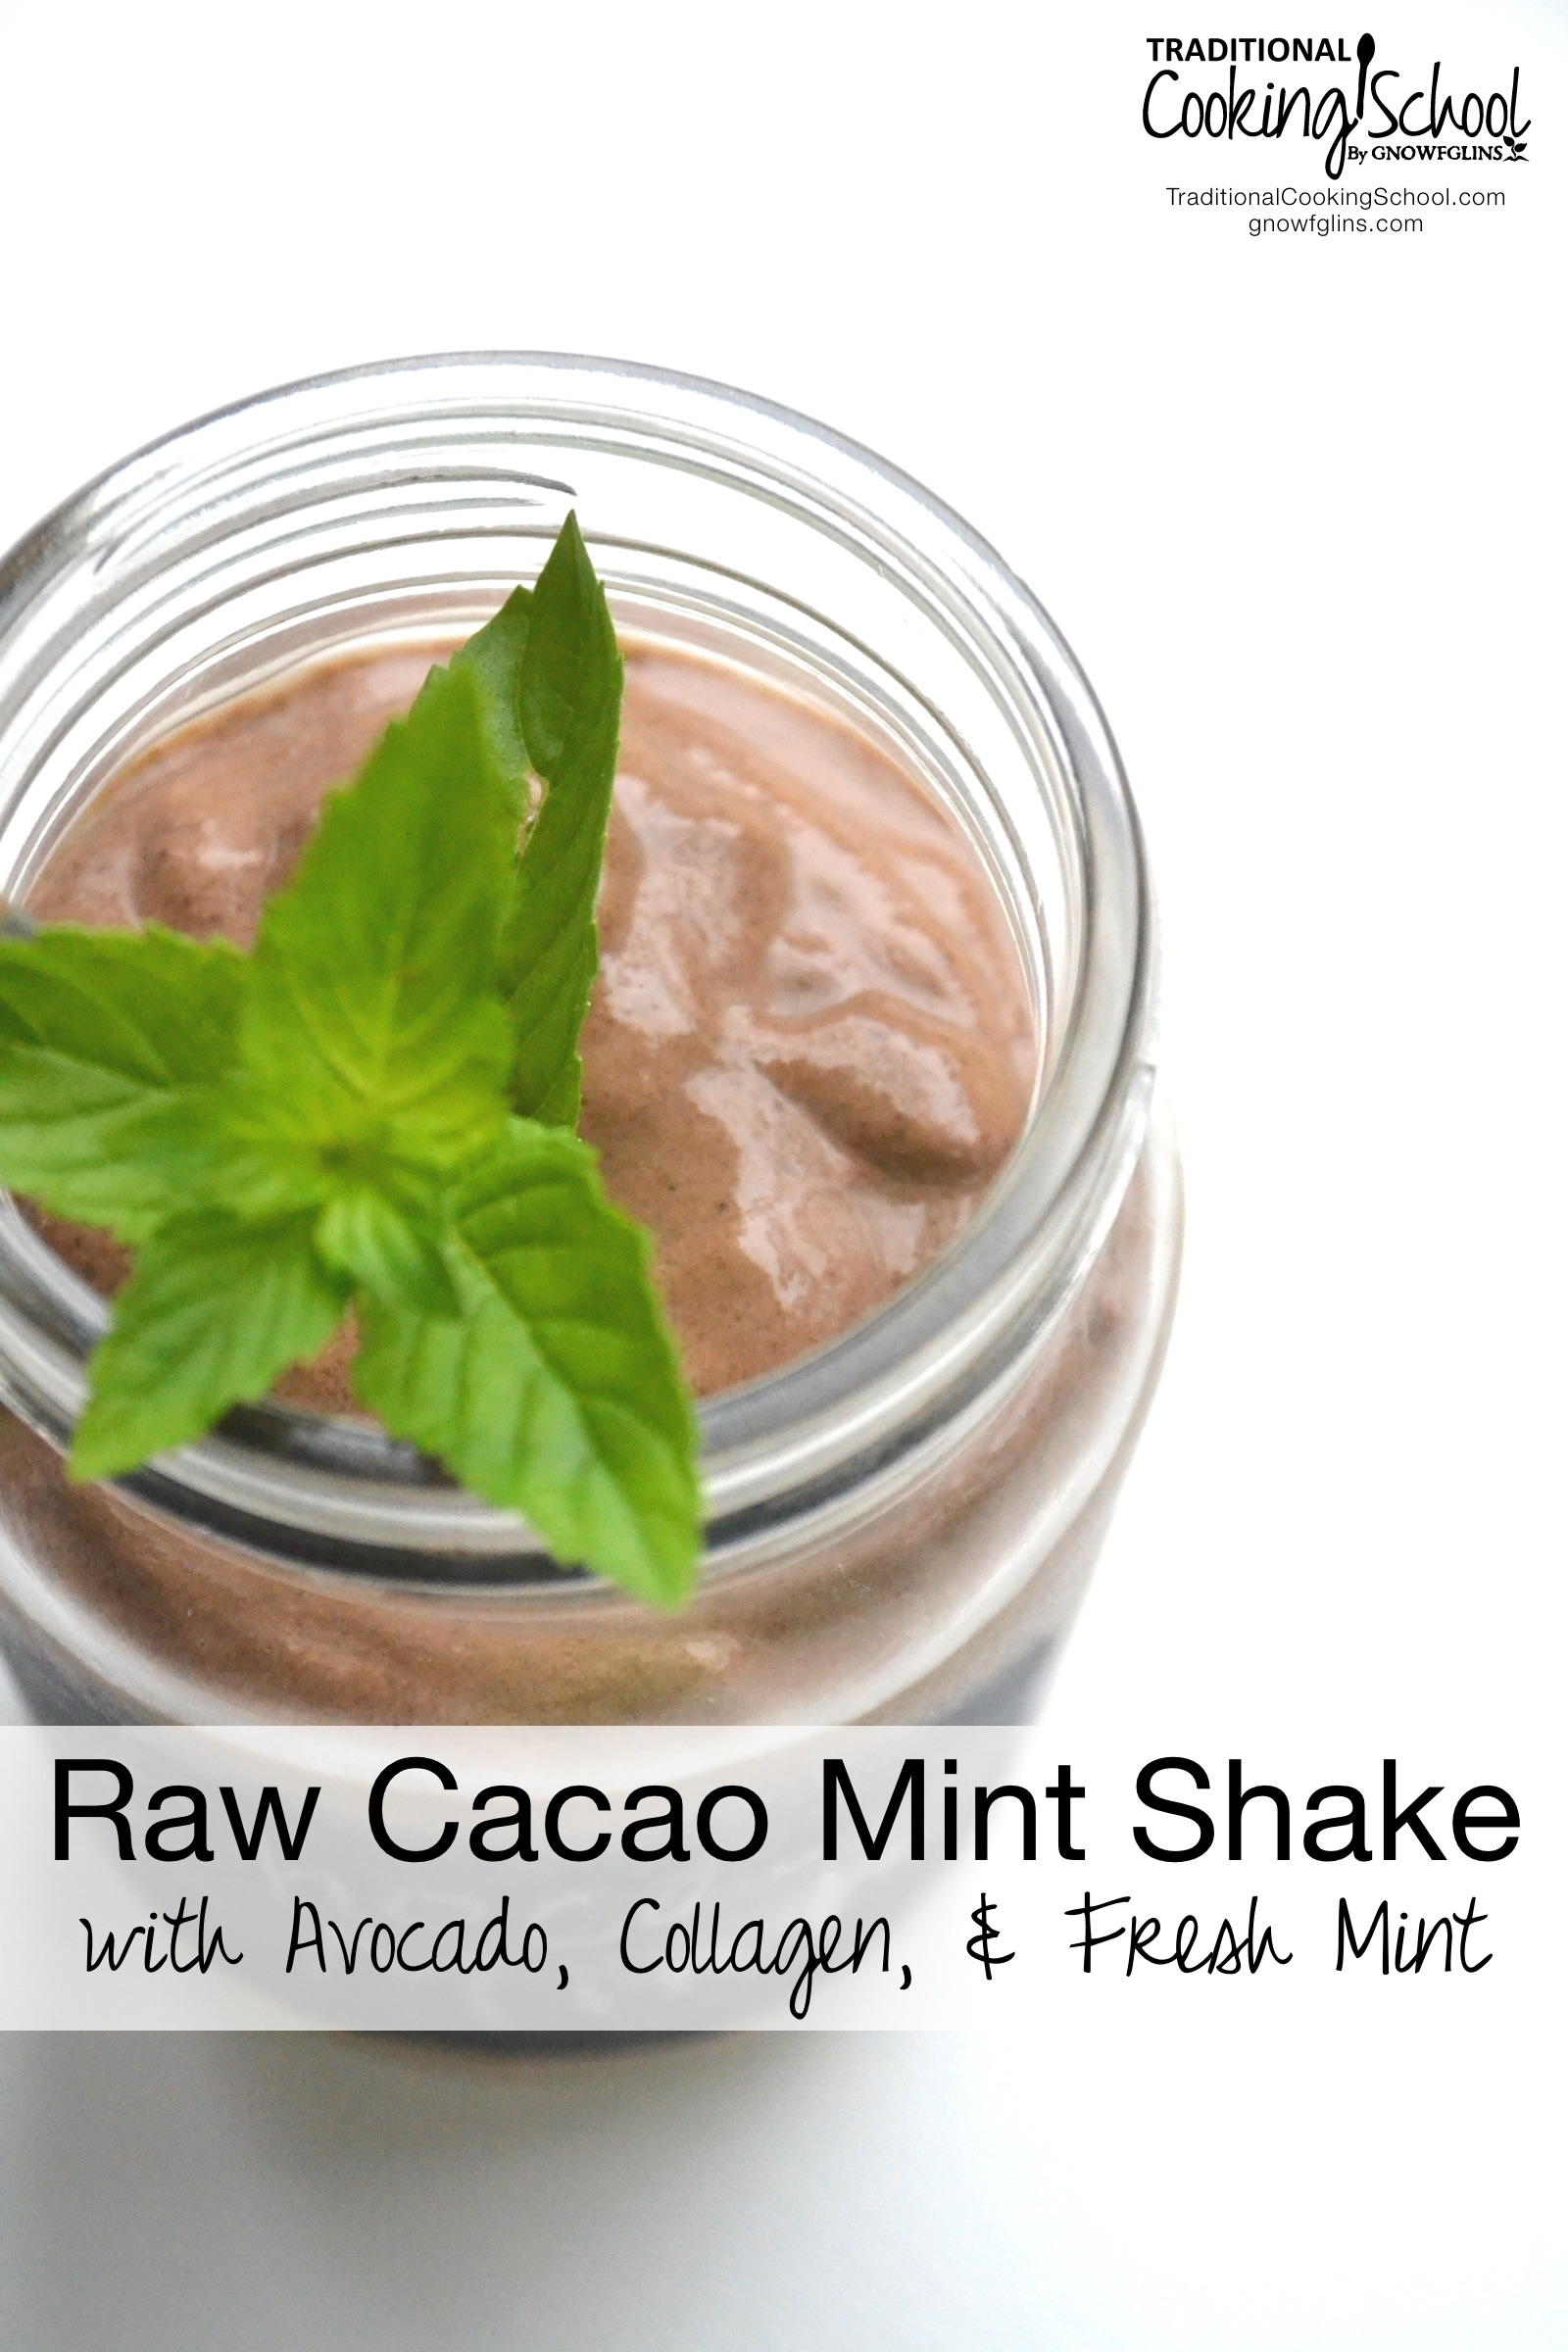 Raw Cacao Mint Shake w/ Avocado, Collagen & Fresh Mint | Have you ever needed a recipe so versatile it can serve several purposes? Perhaps a better question -- does that kind of recipe even exist? Yes, and here it is: a chocolate mint shake! This shake can be breakfast OR a quick afternoon snack OR dessert OR late-night hunger buster! | TraditionalCookingSchool.com